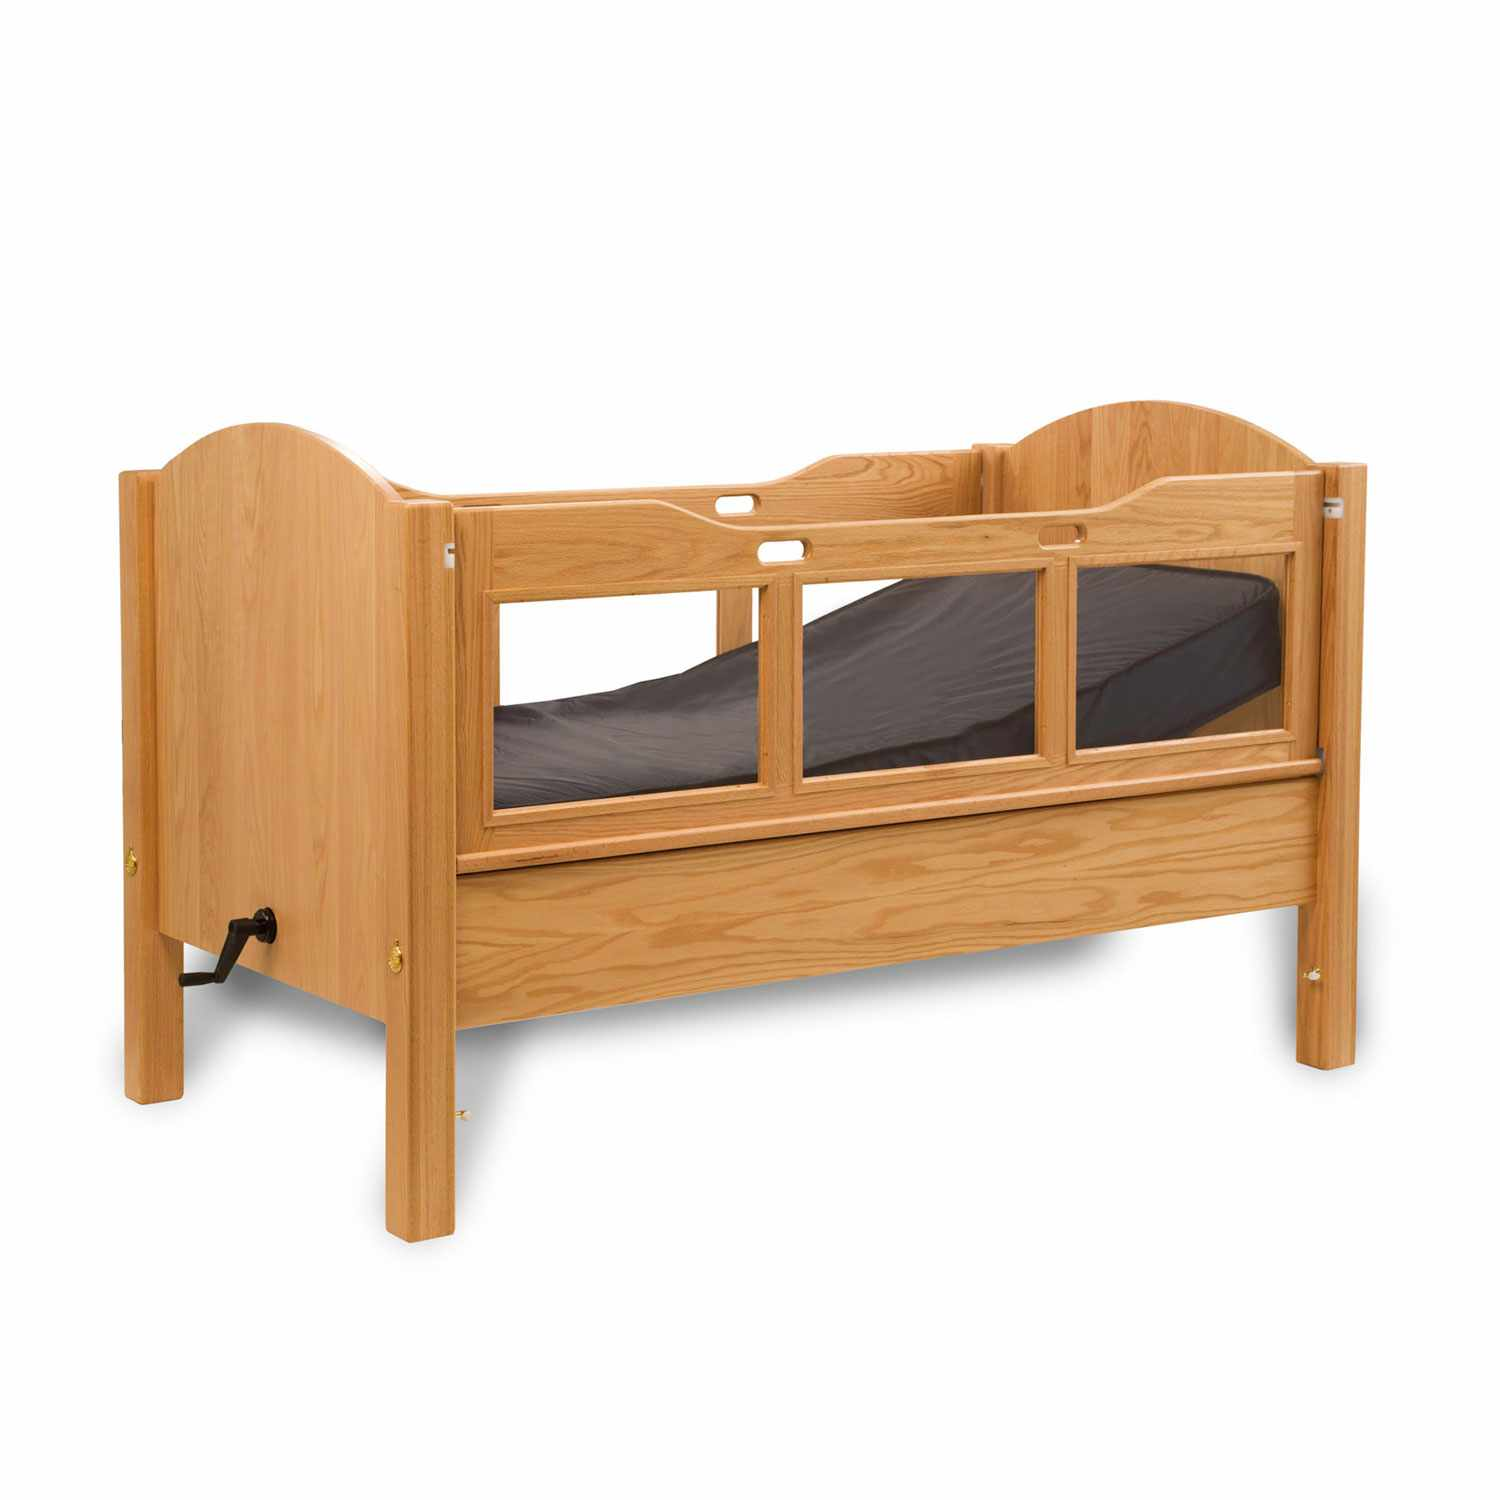 Dream series manual head adjustable double size bed